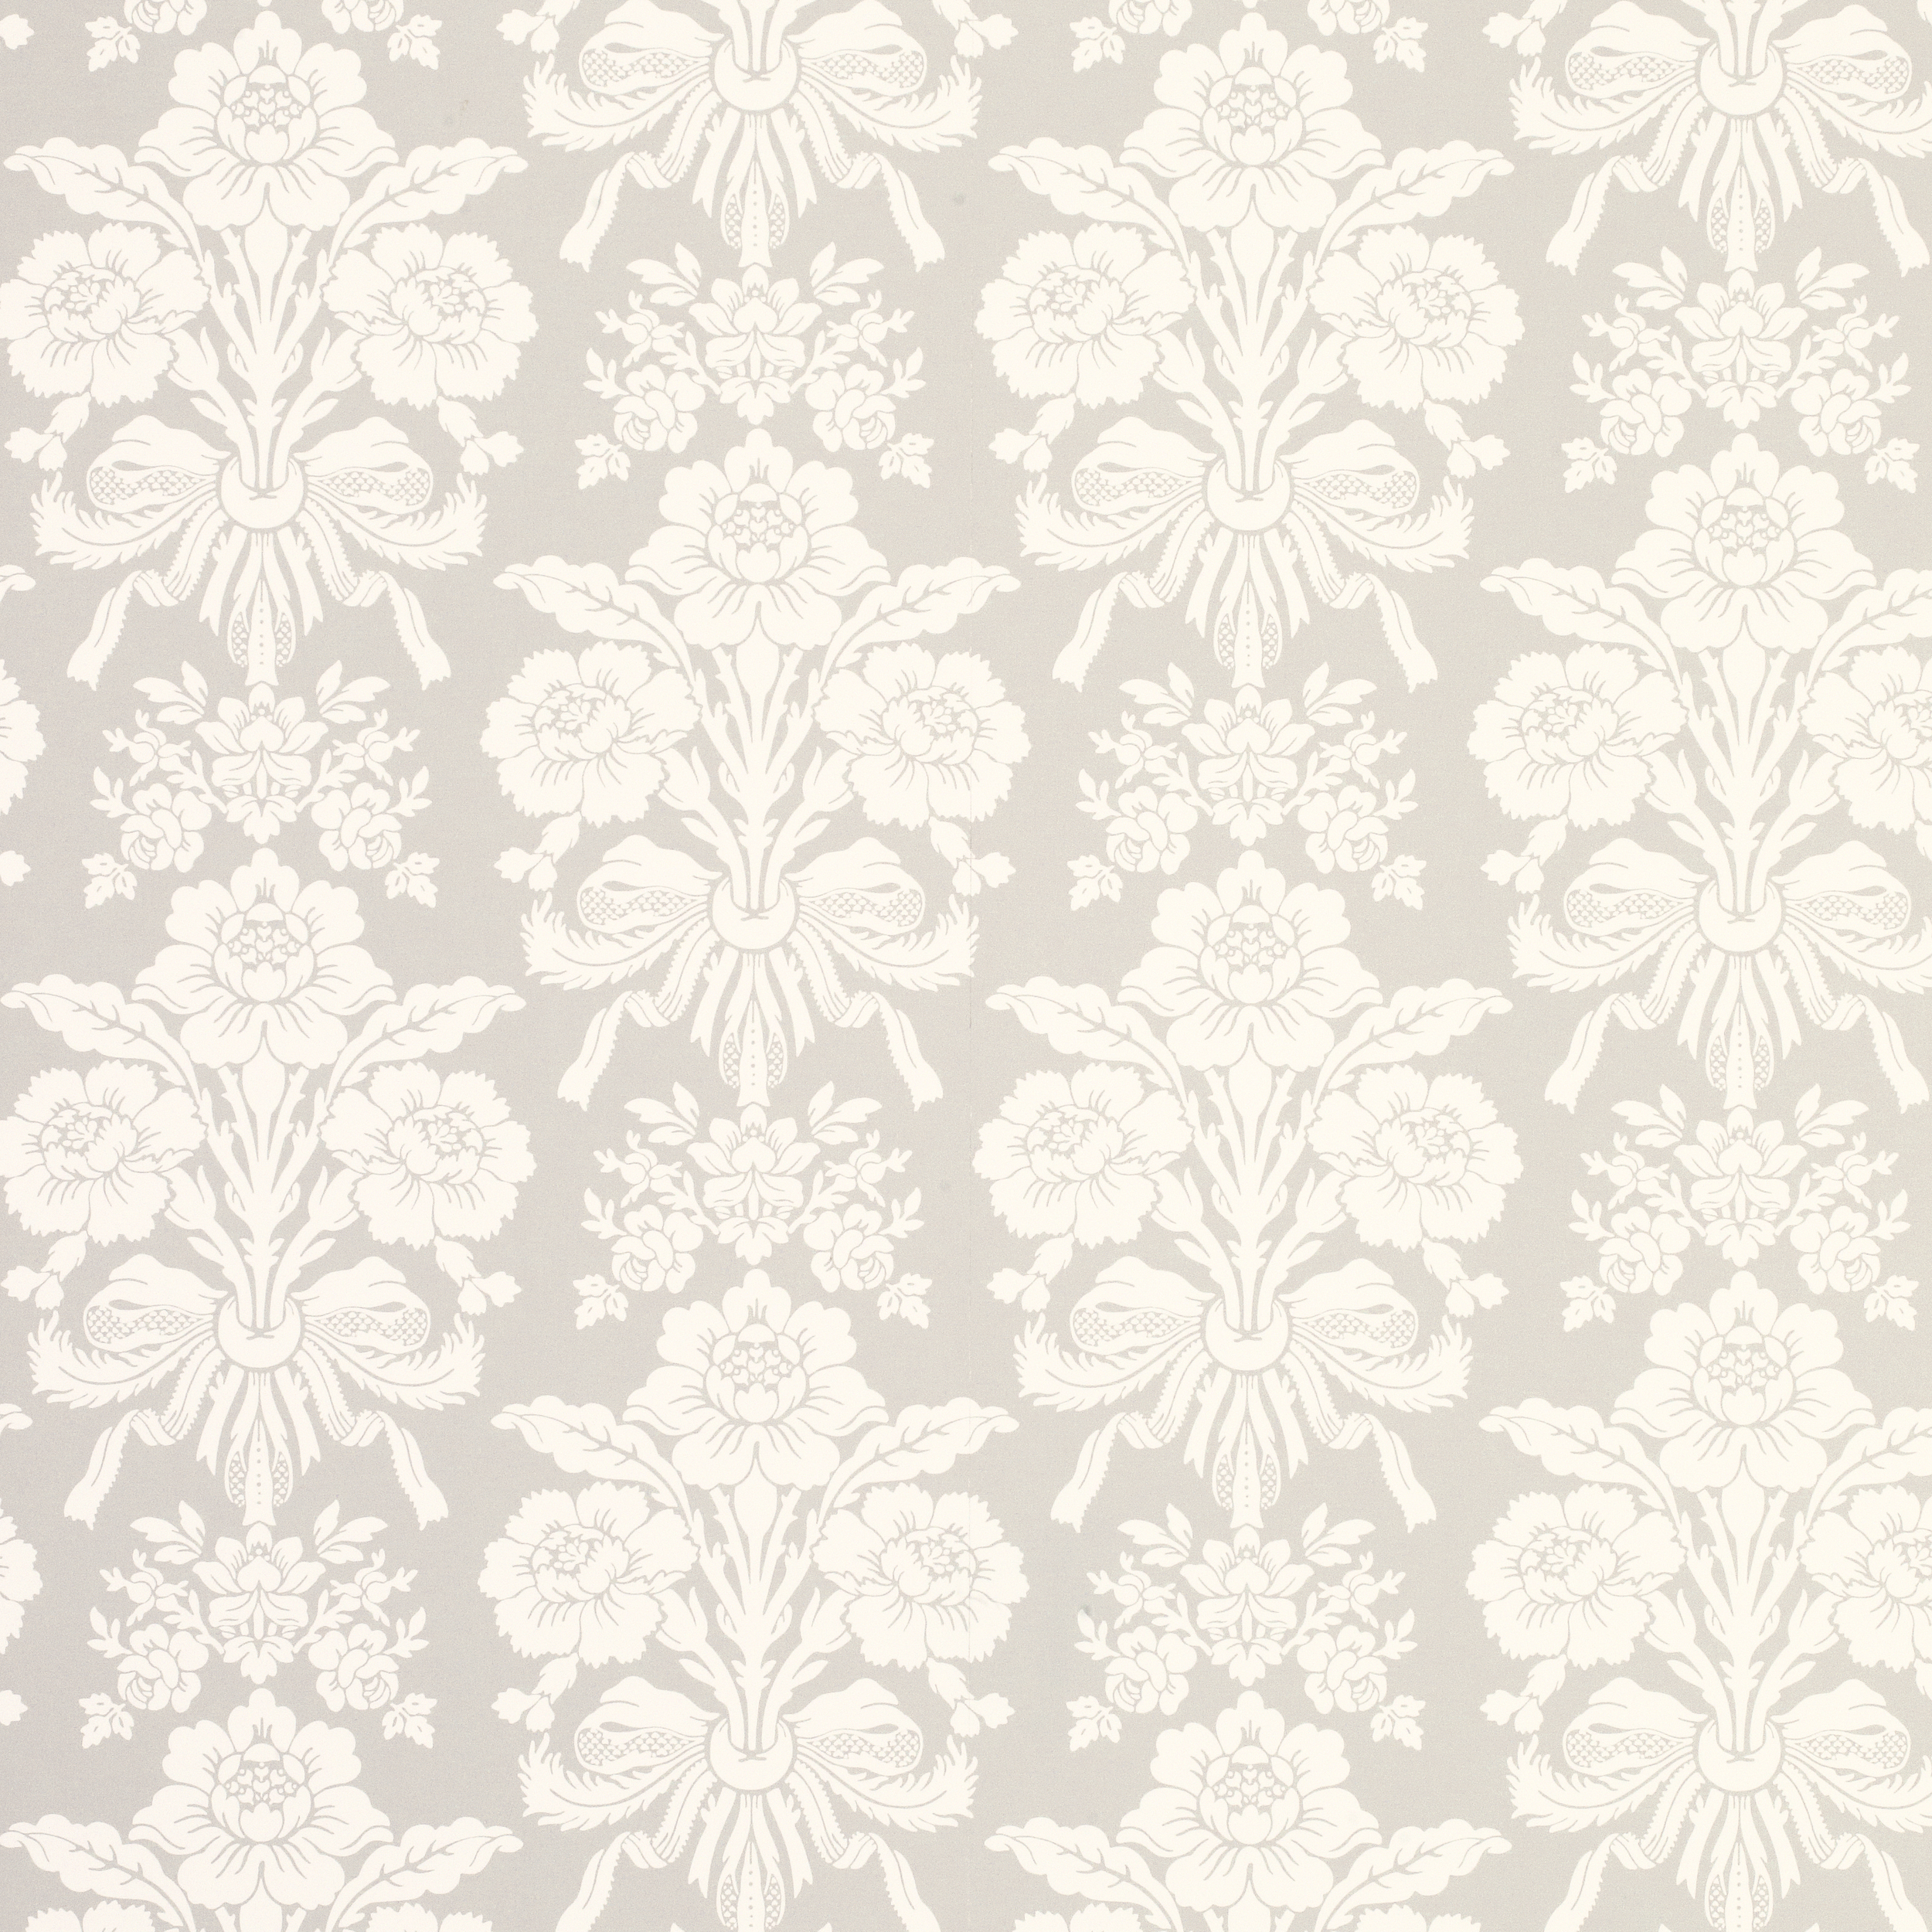 grey and white wallpaper 2015   Grasscloth Wallpaper 2500x2500